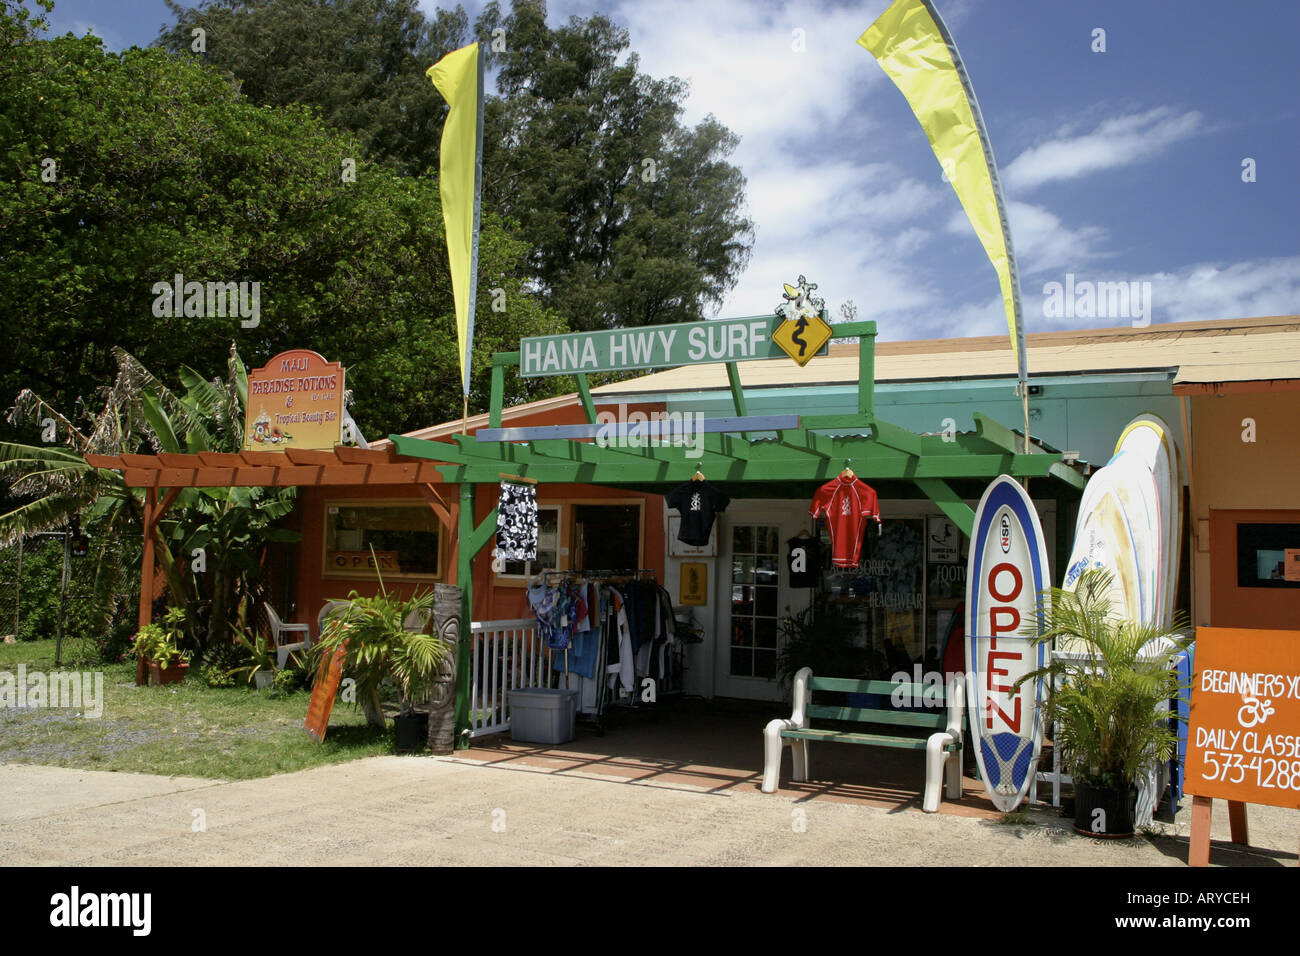 9c8c77939a The Hana highway surf shop located in the small town of Paia, a ...